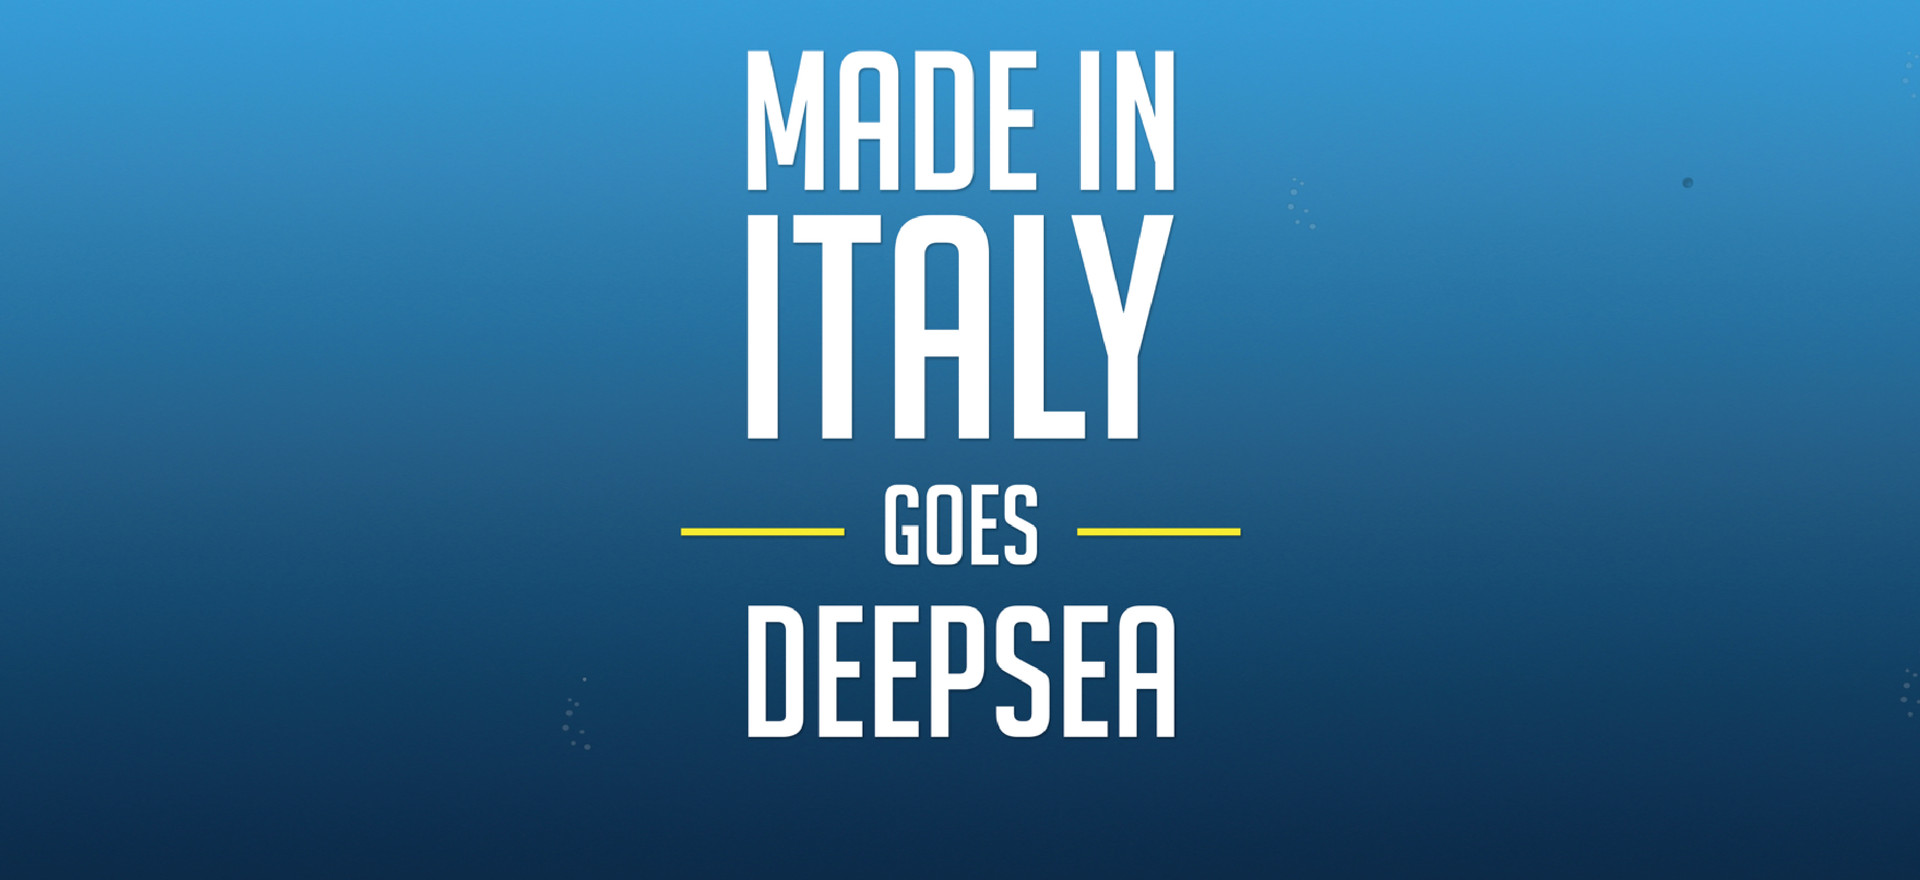 Redaelli Flexpack  - Made in Italy goes deepsea